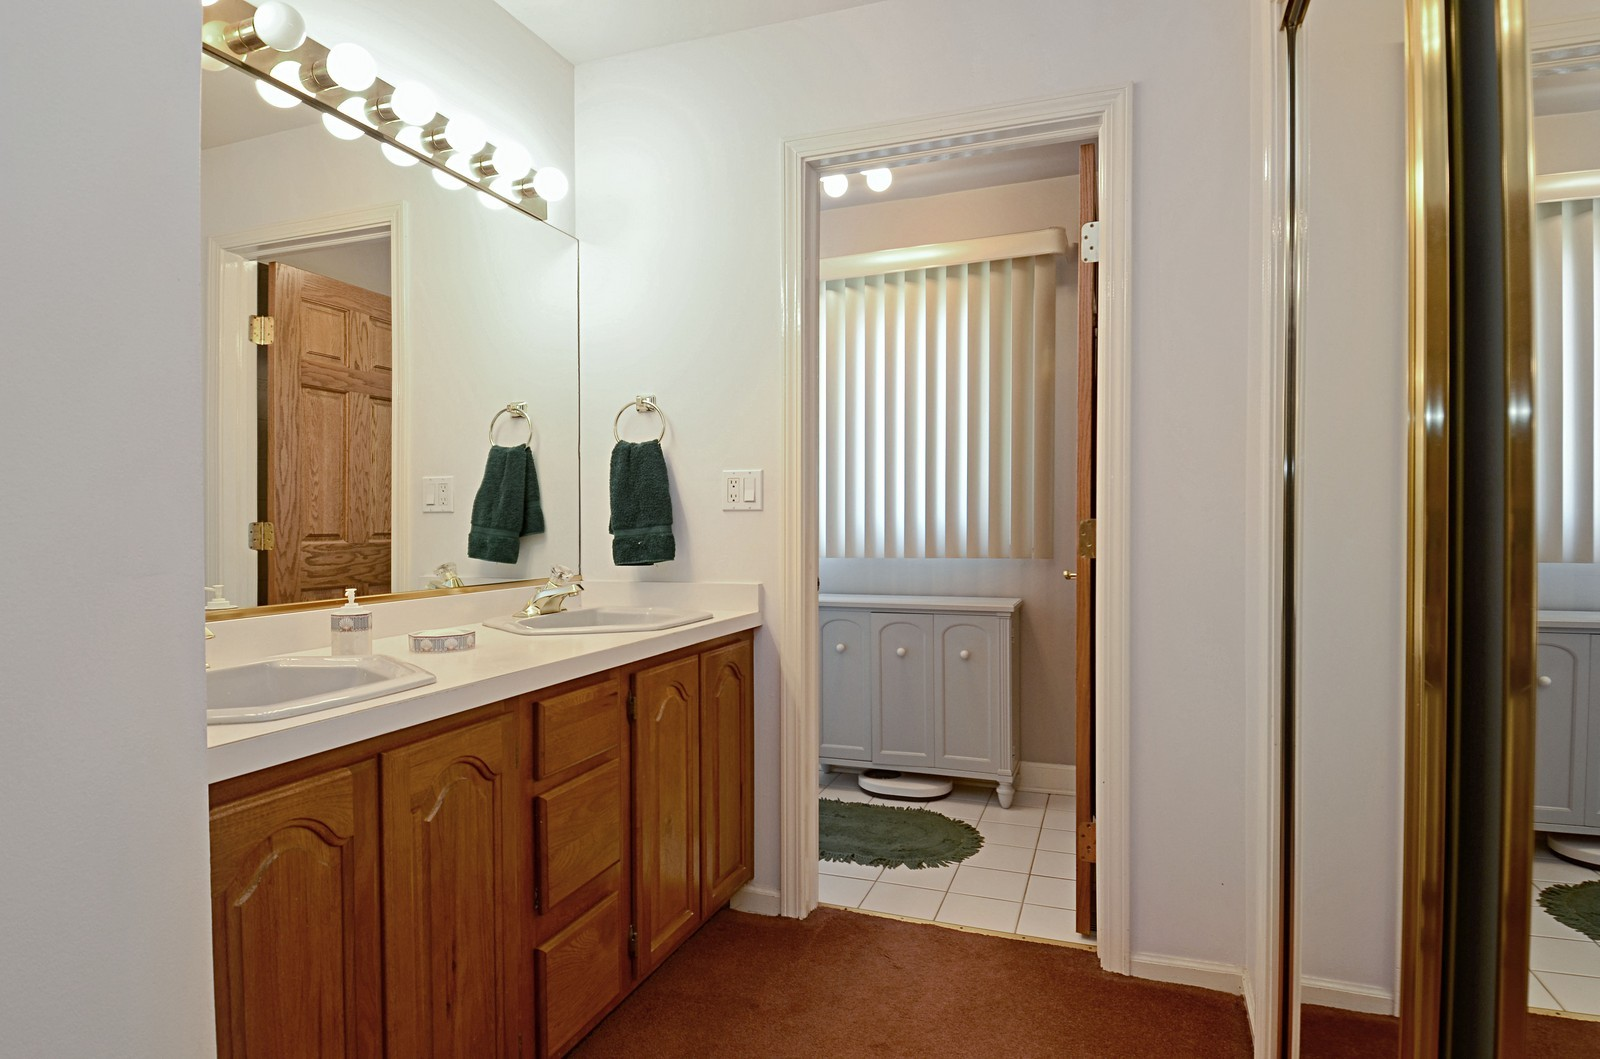 Real Estate Photography - 367 S Edgewood, Wood Dale, IL, 60191 - Master Bathroom